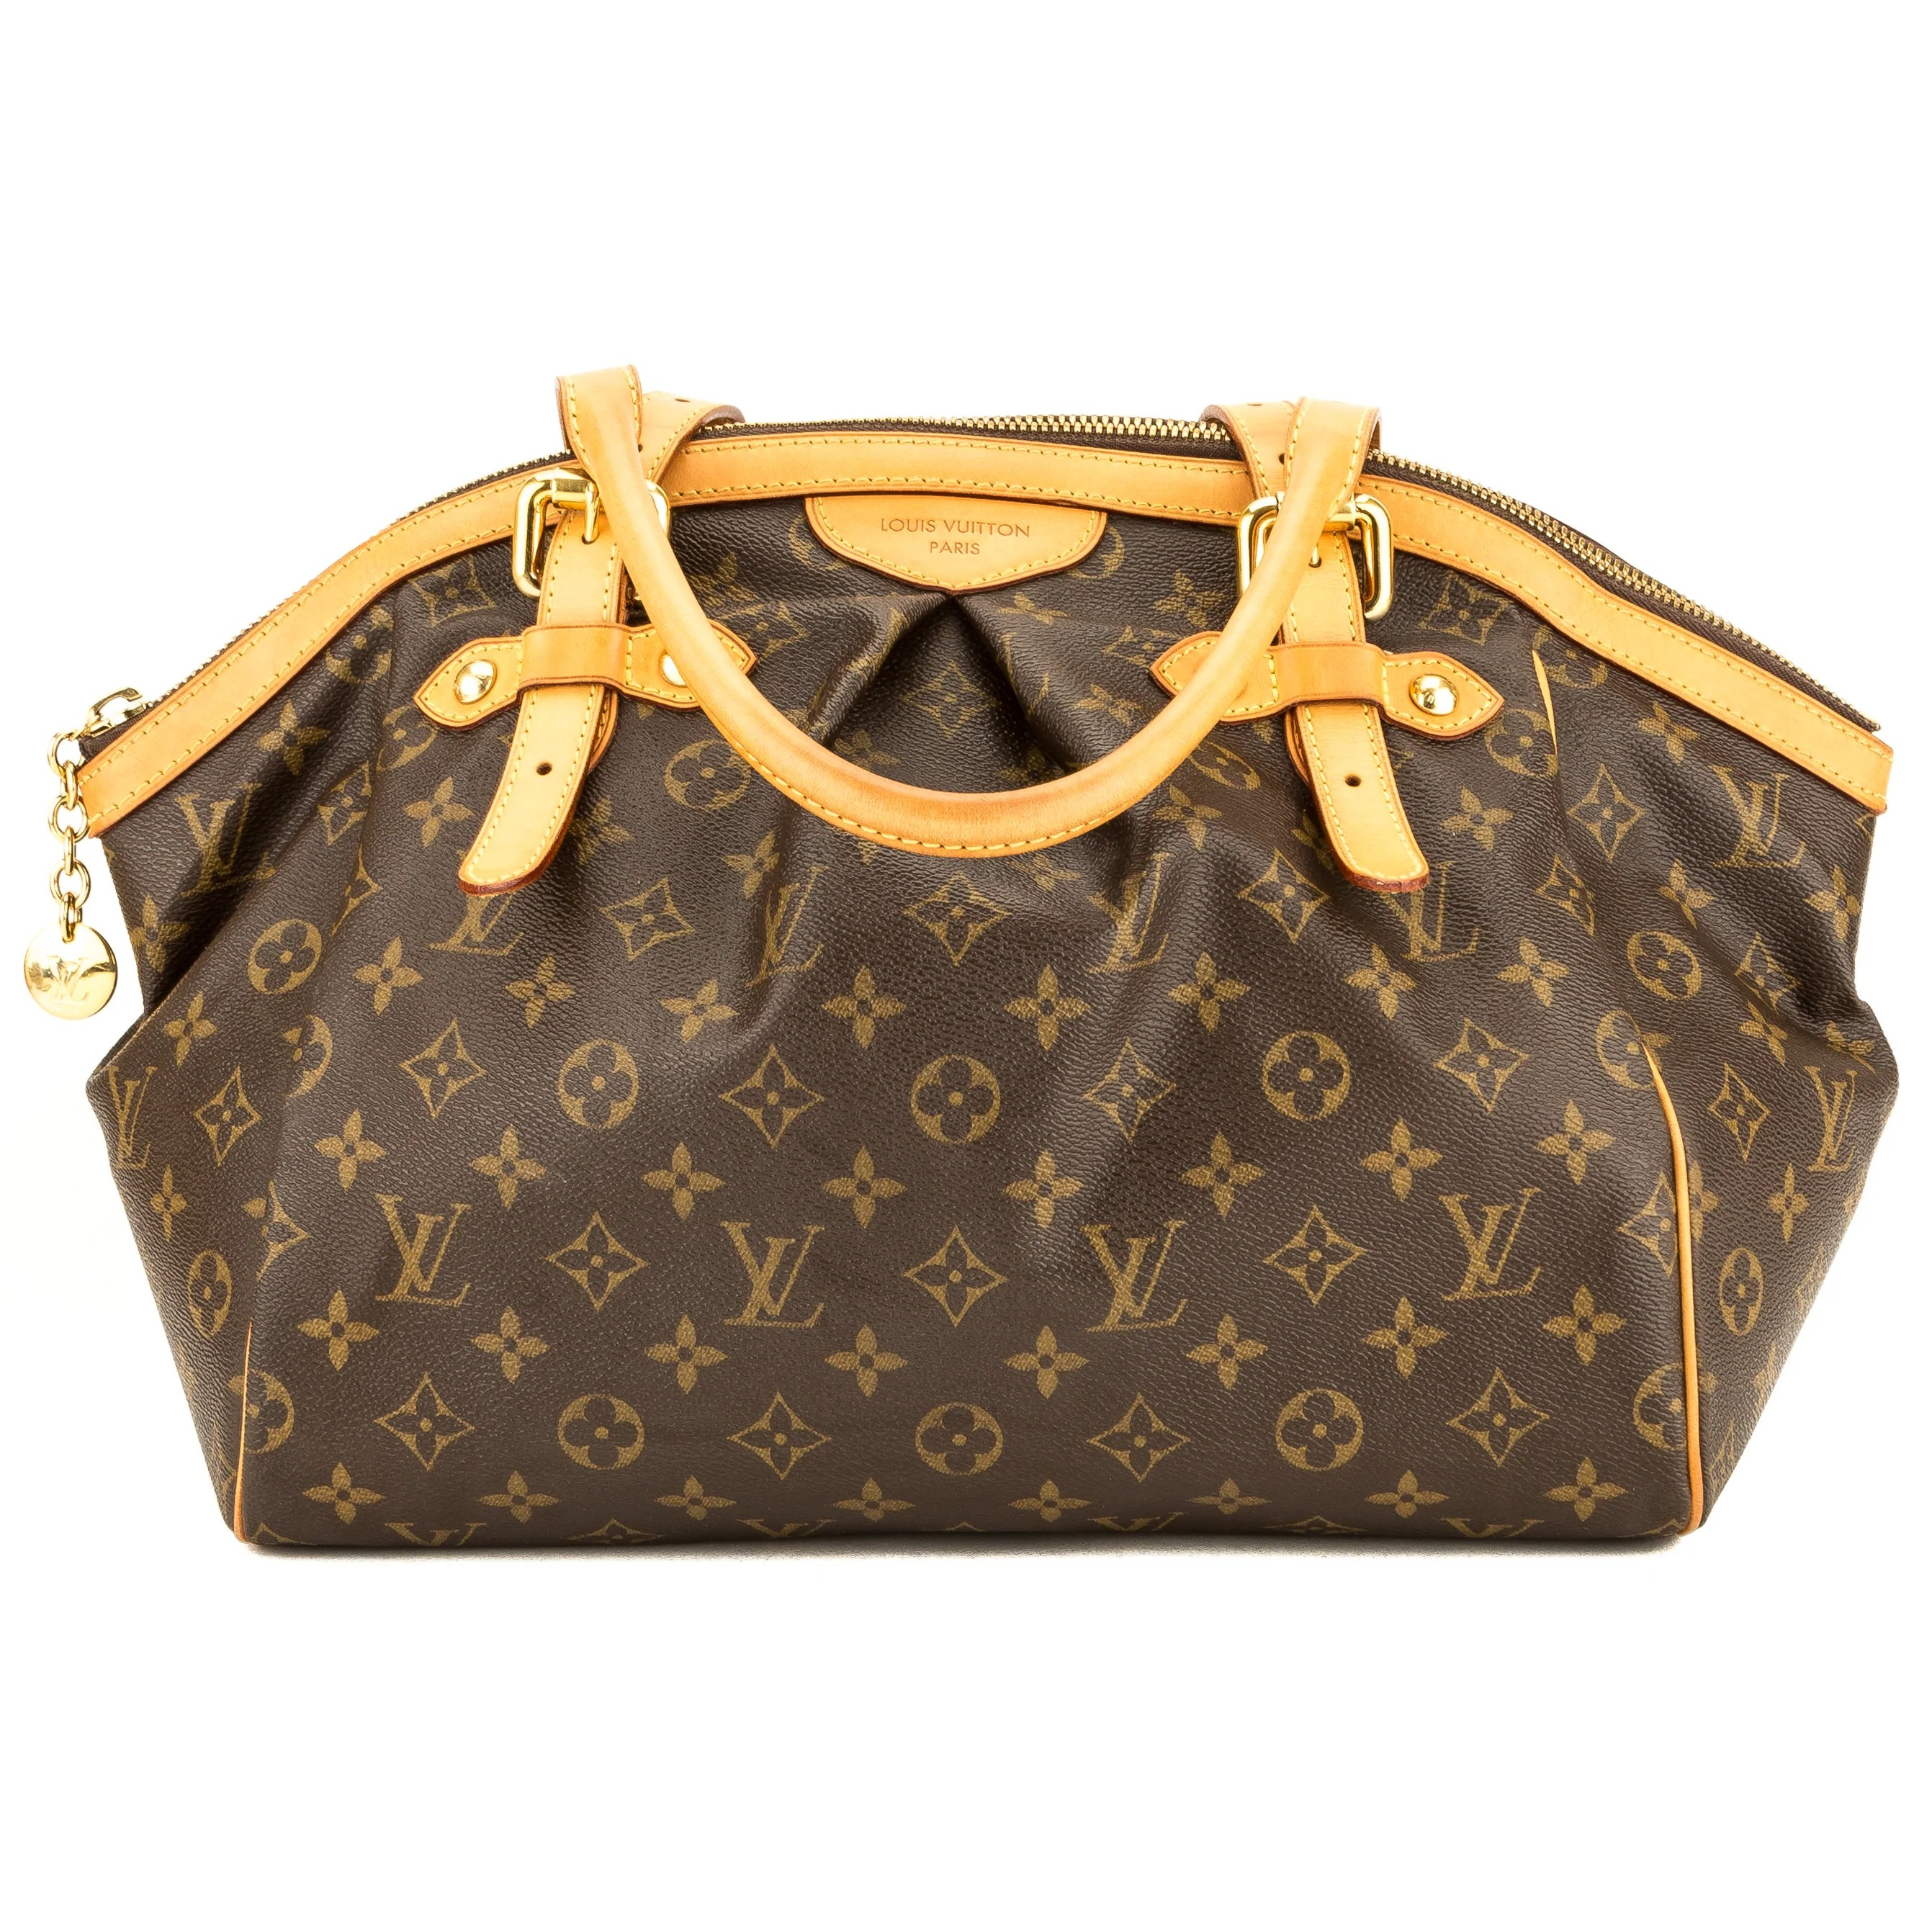 Tivoli Gm Louis Vuitton Monogram Canvas Tivoli Gm Bag 3898006